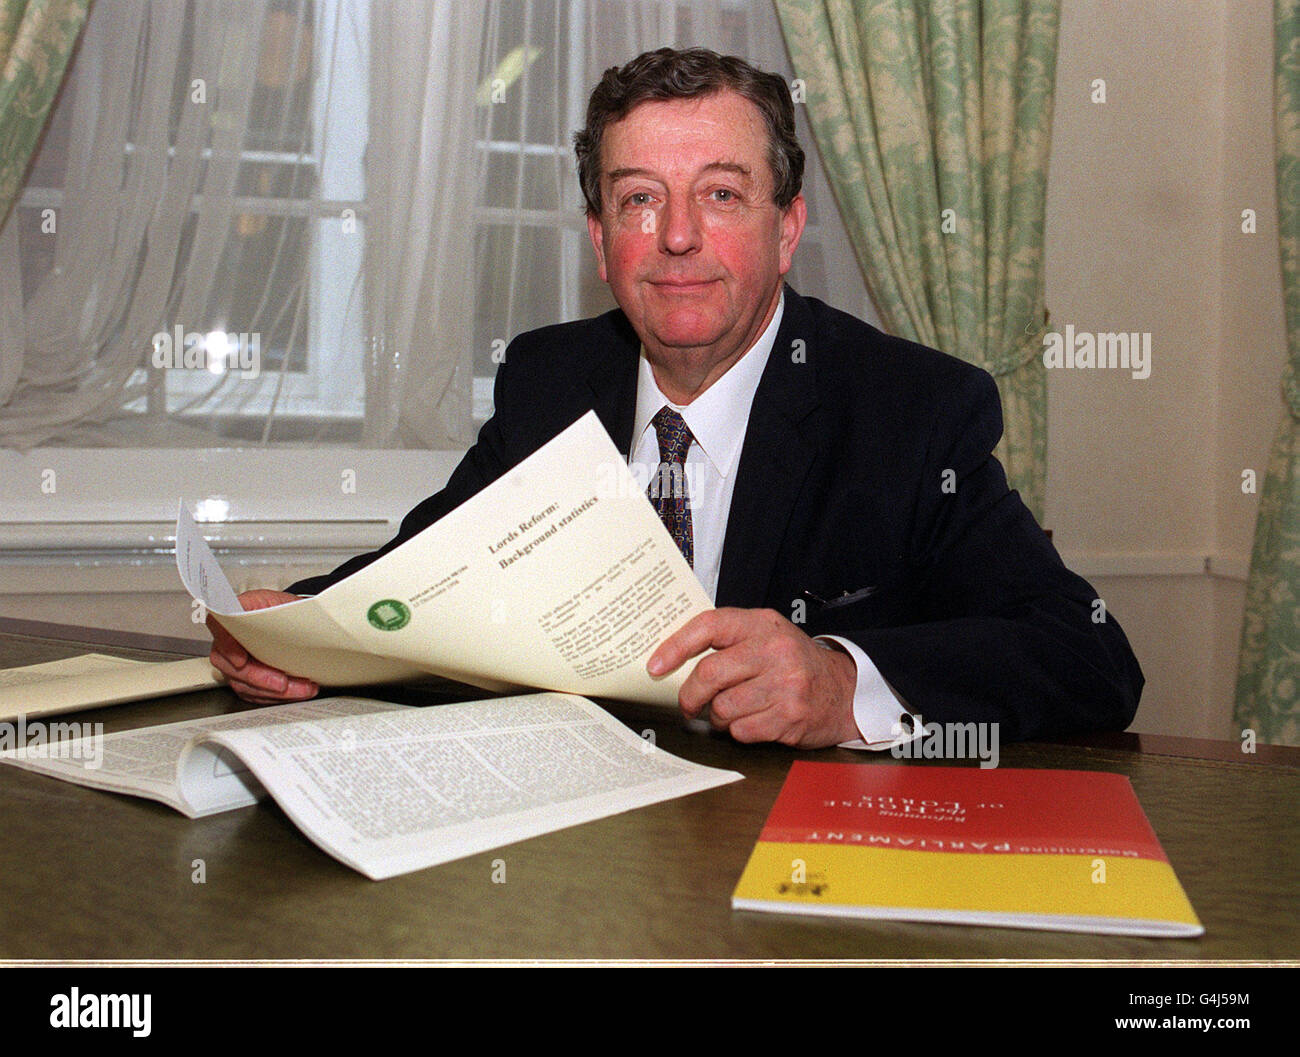 Lord Wakeham/House of Lords 1 - Stock Image